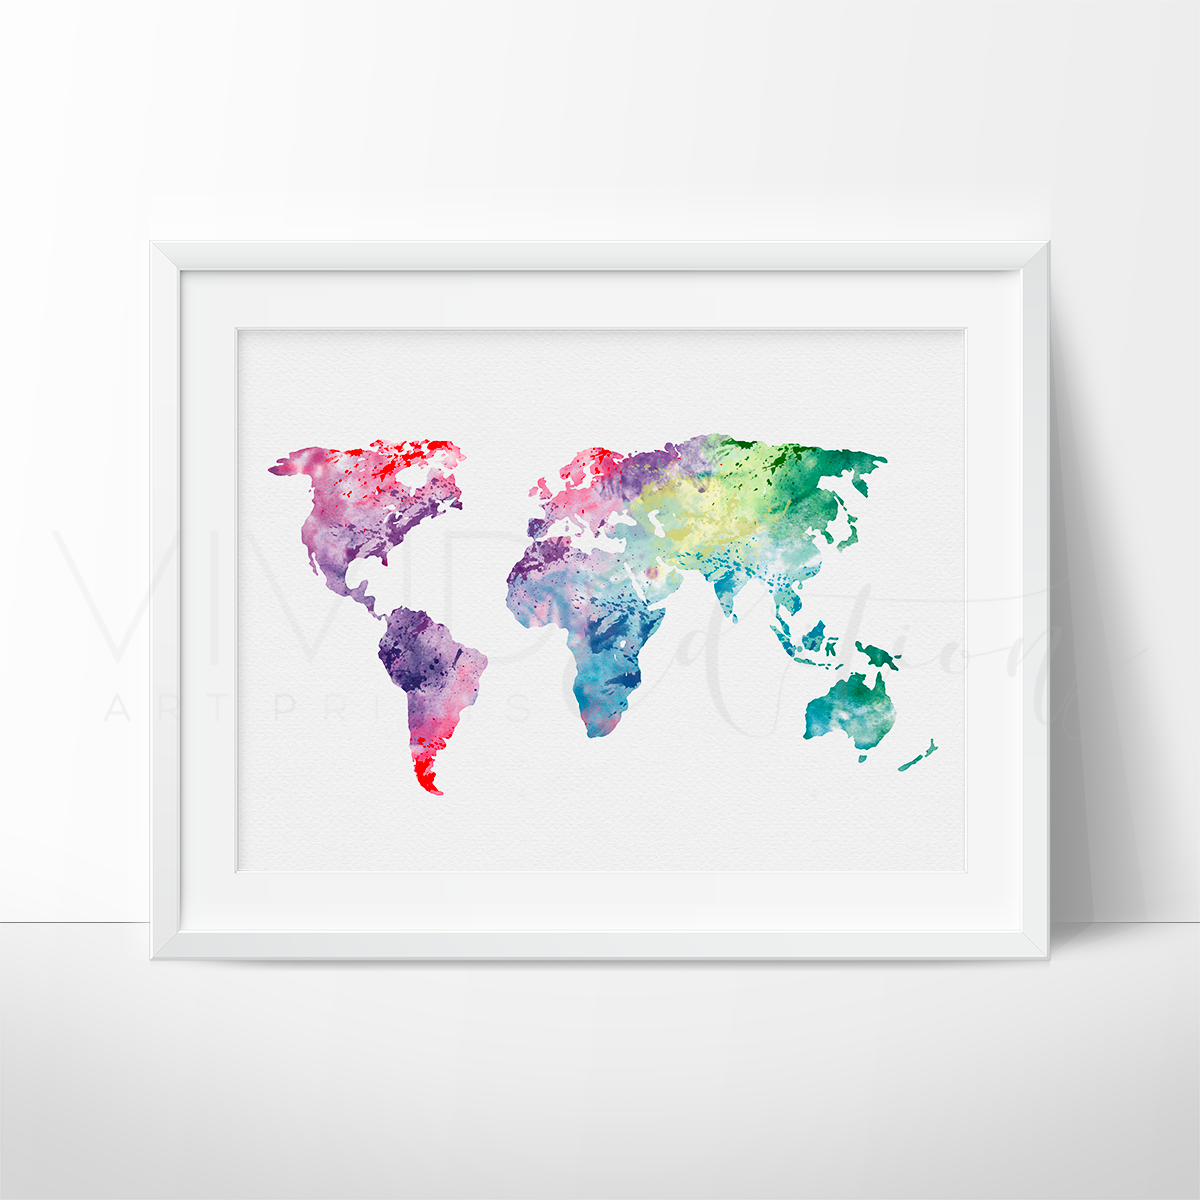 World map 1 watercolor art print cenas flor y arte world map watercolor art this art illustration is a composition of digital watercolor images and gumiabroncs Images